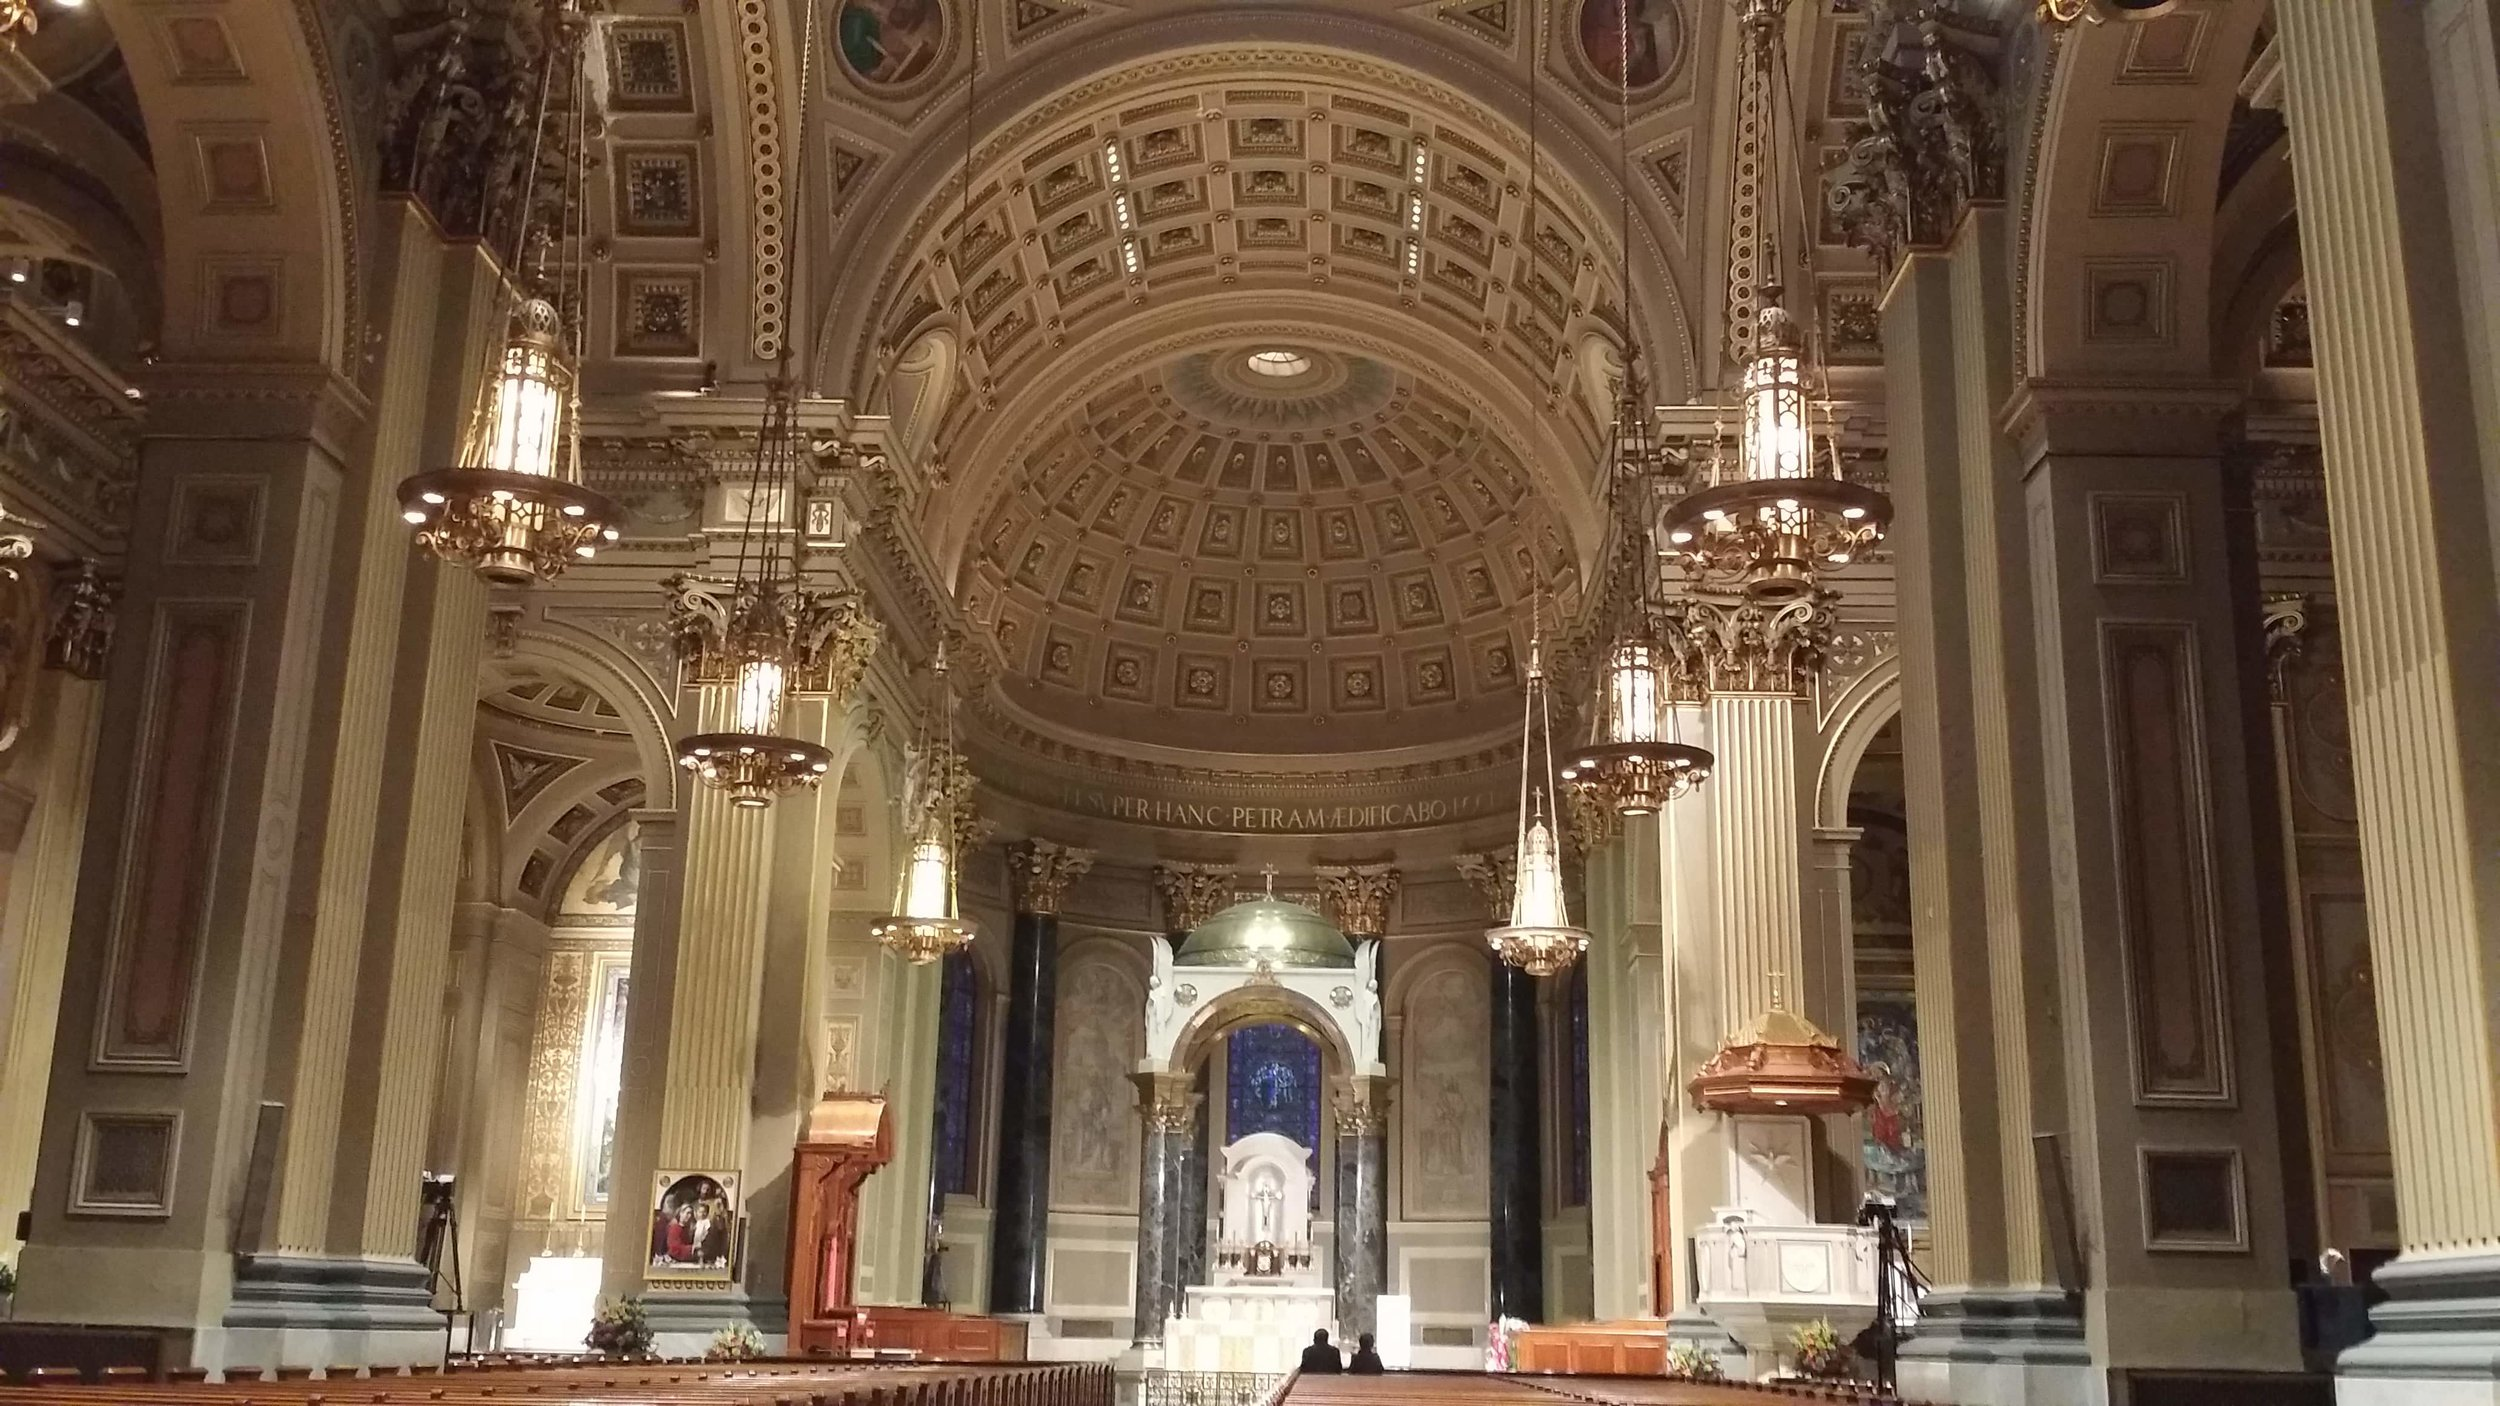 Interior of The Cathedral Basilica of Saints Peter and Paul, Philadelphia